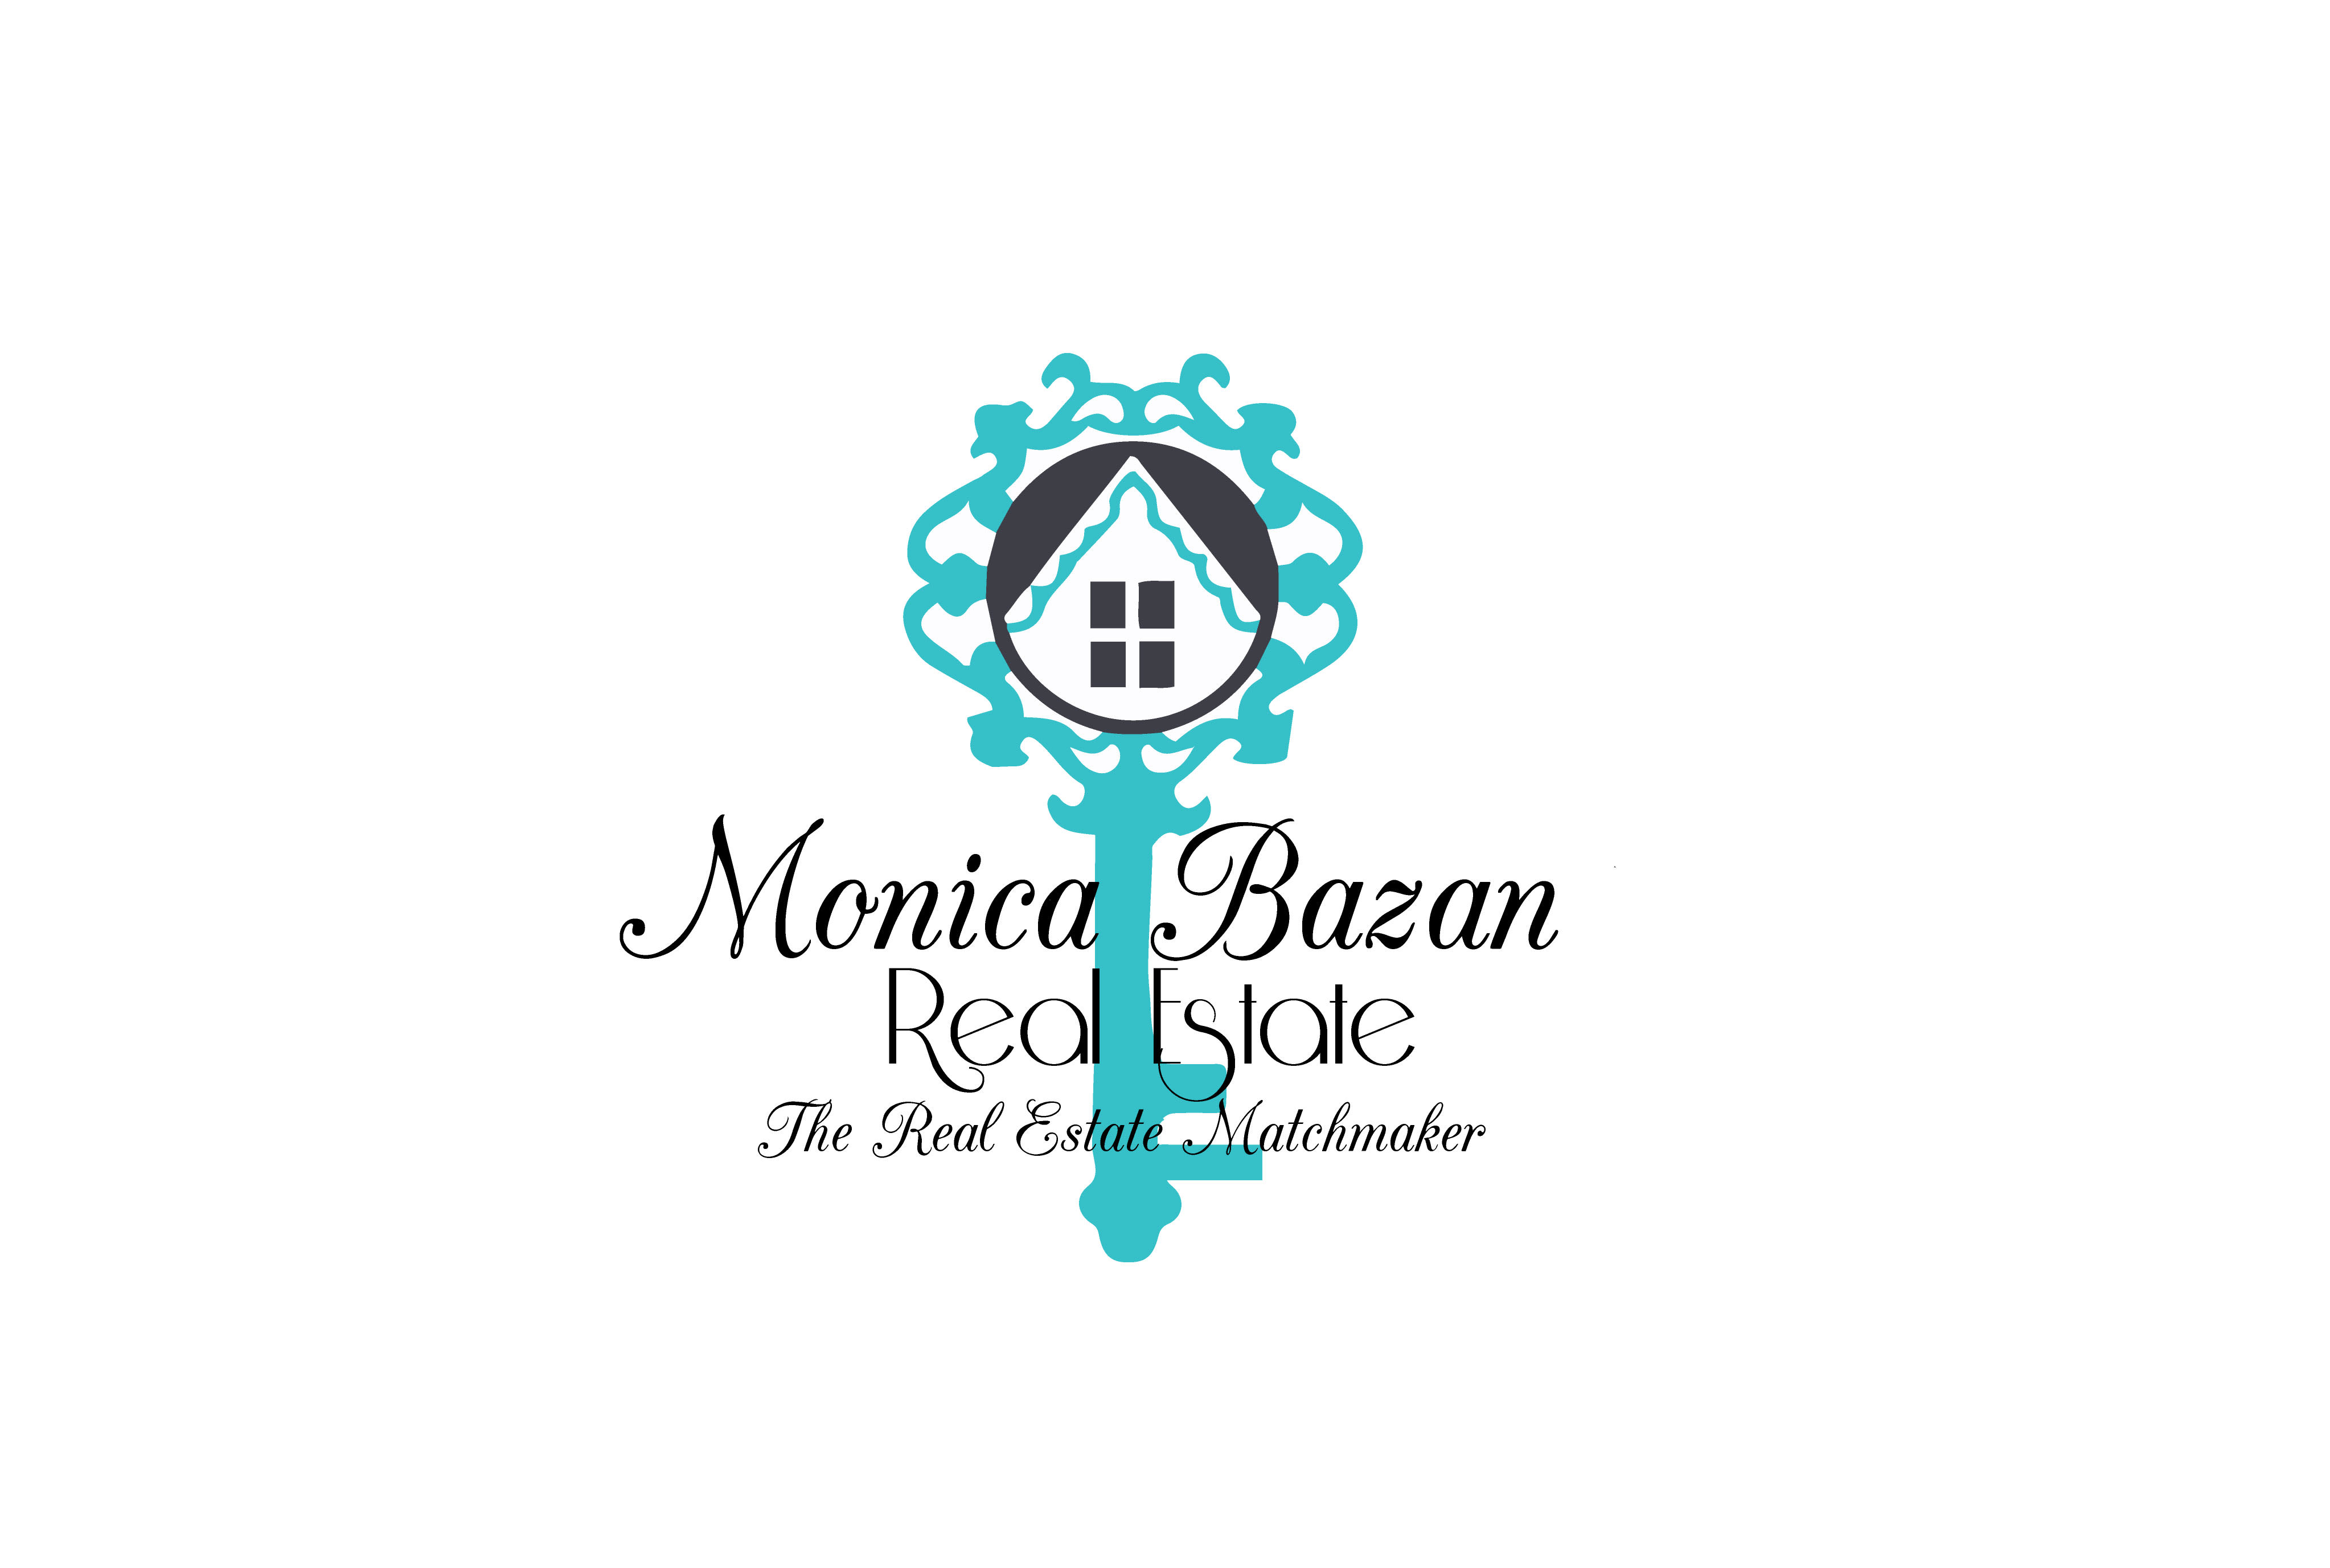 Monica Bazan Real Estate